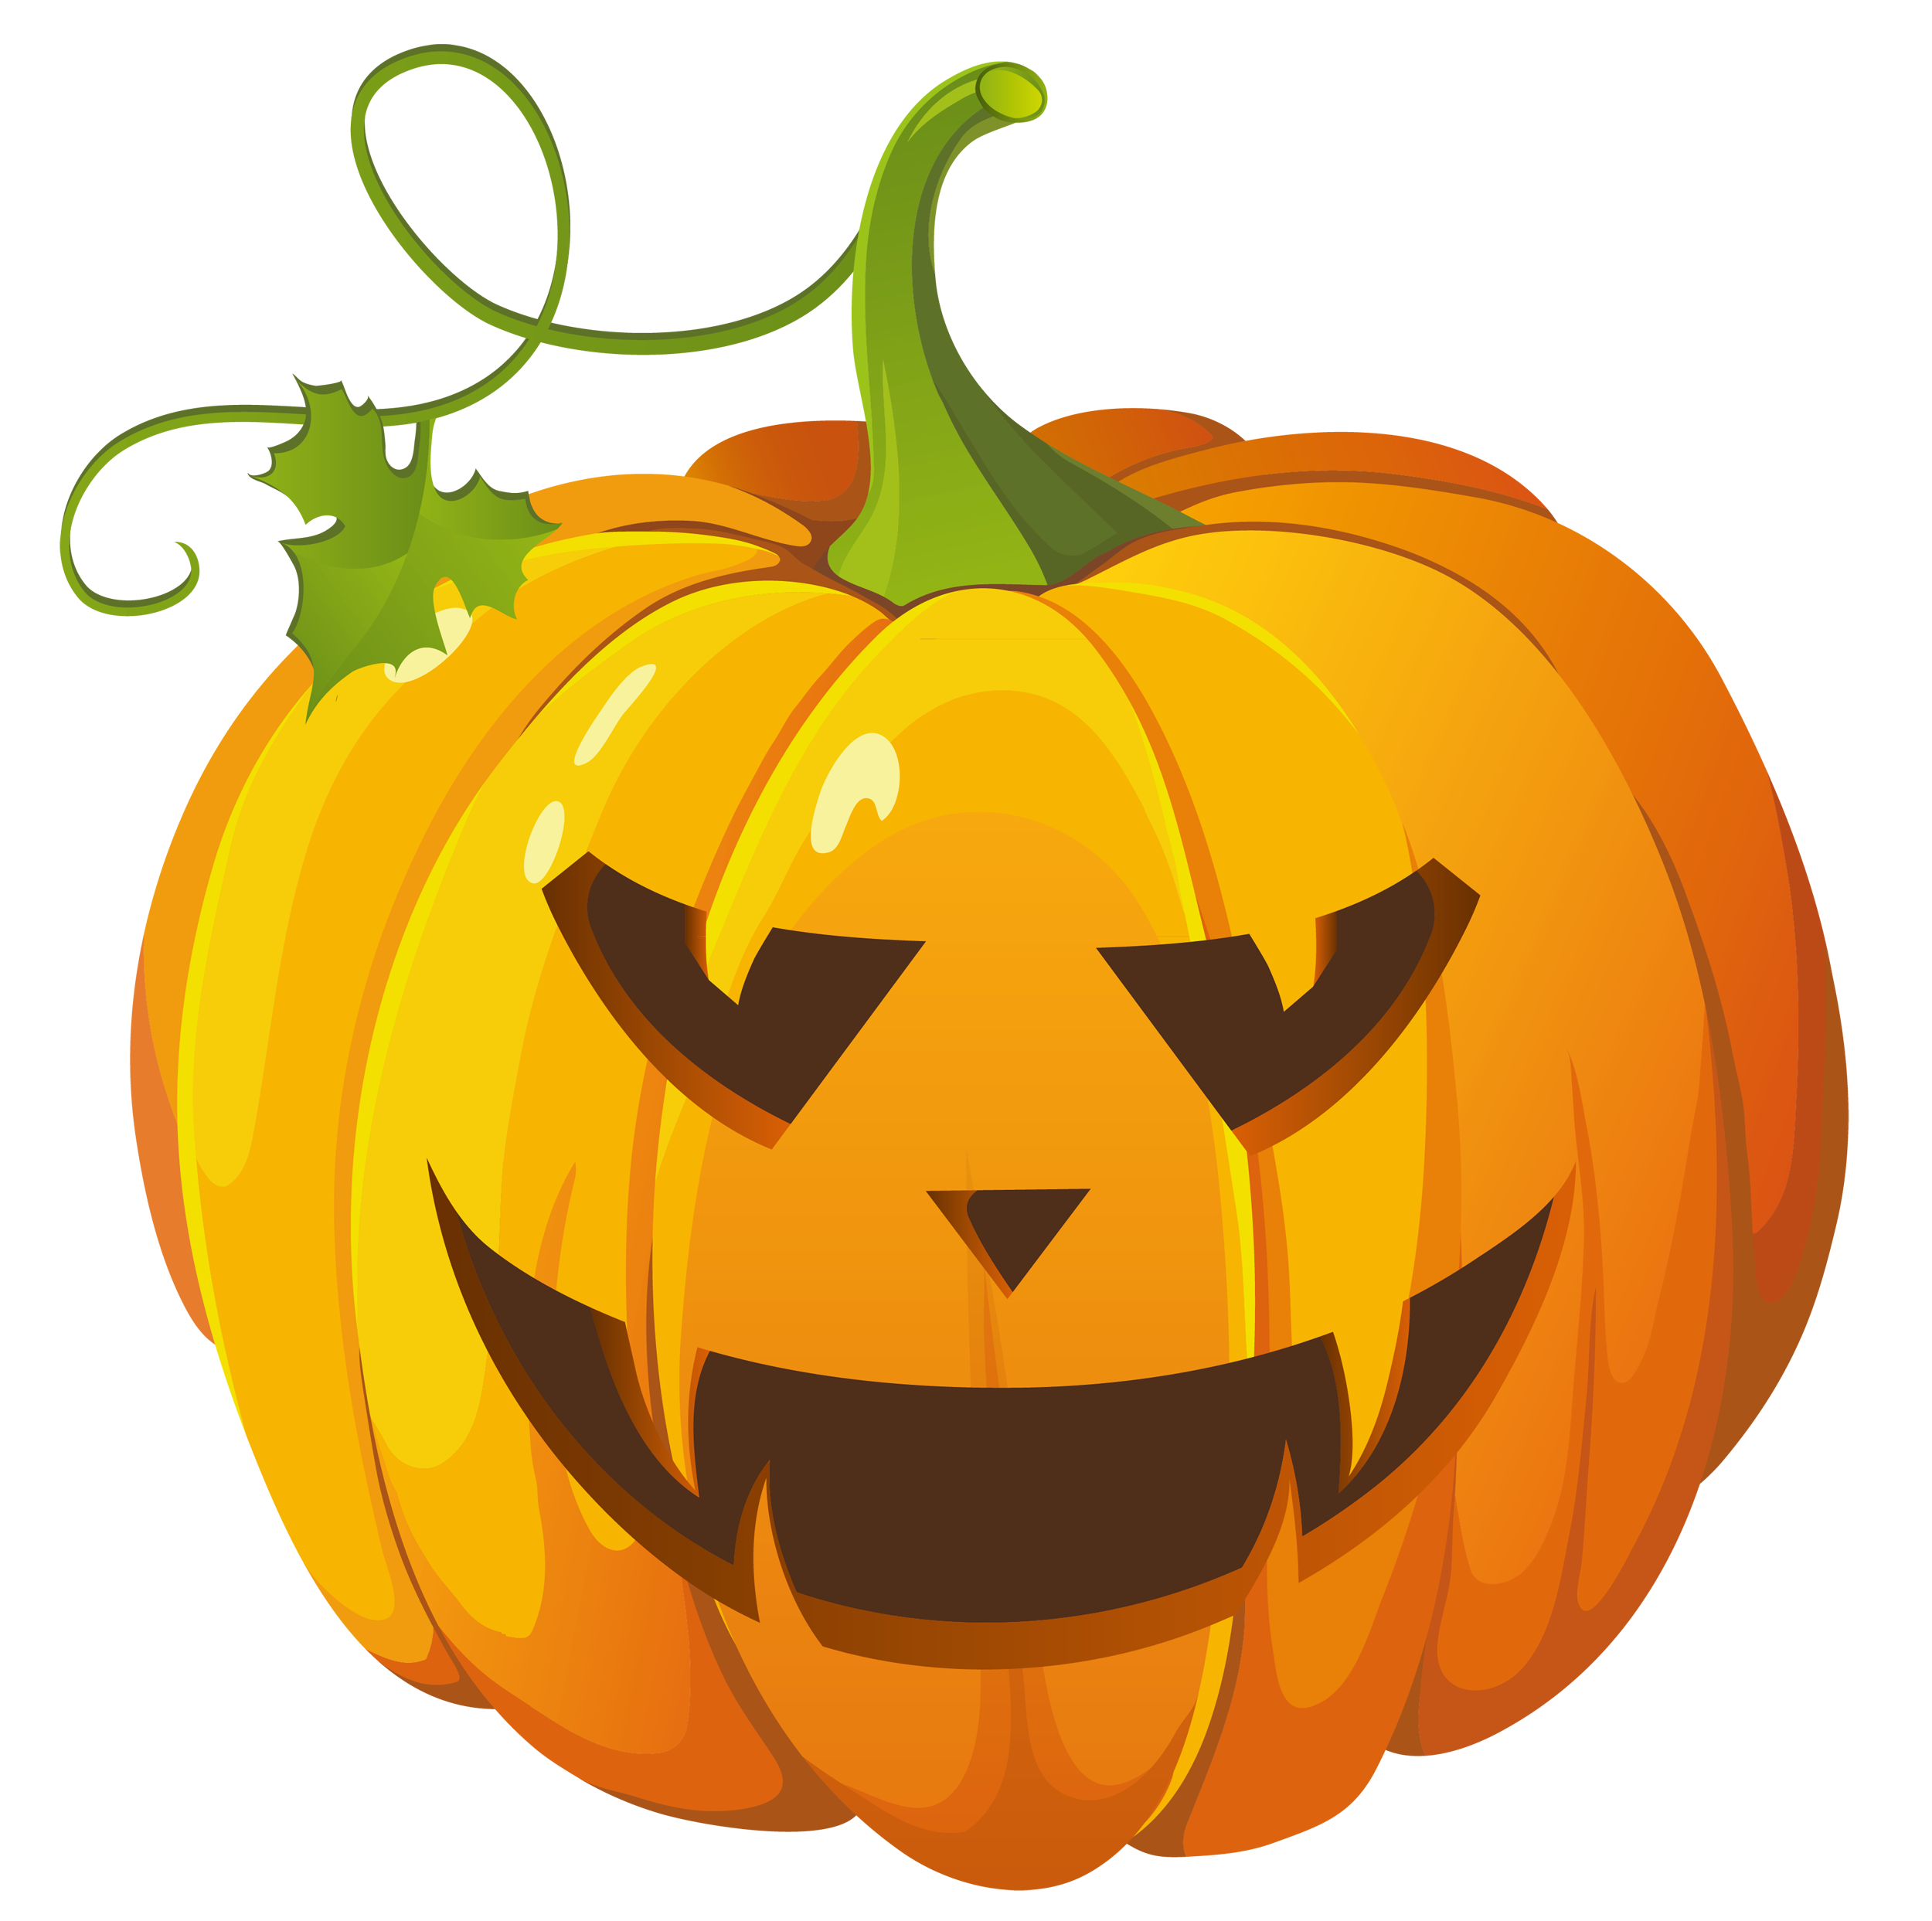 Transparent pumpkins spooky. Collection of free hollowing